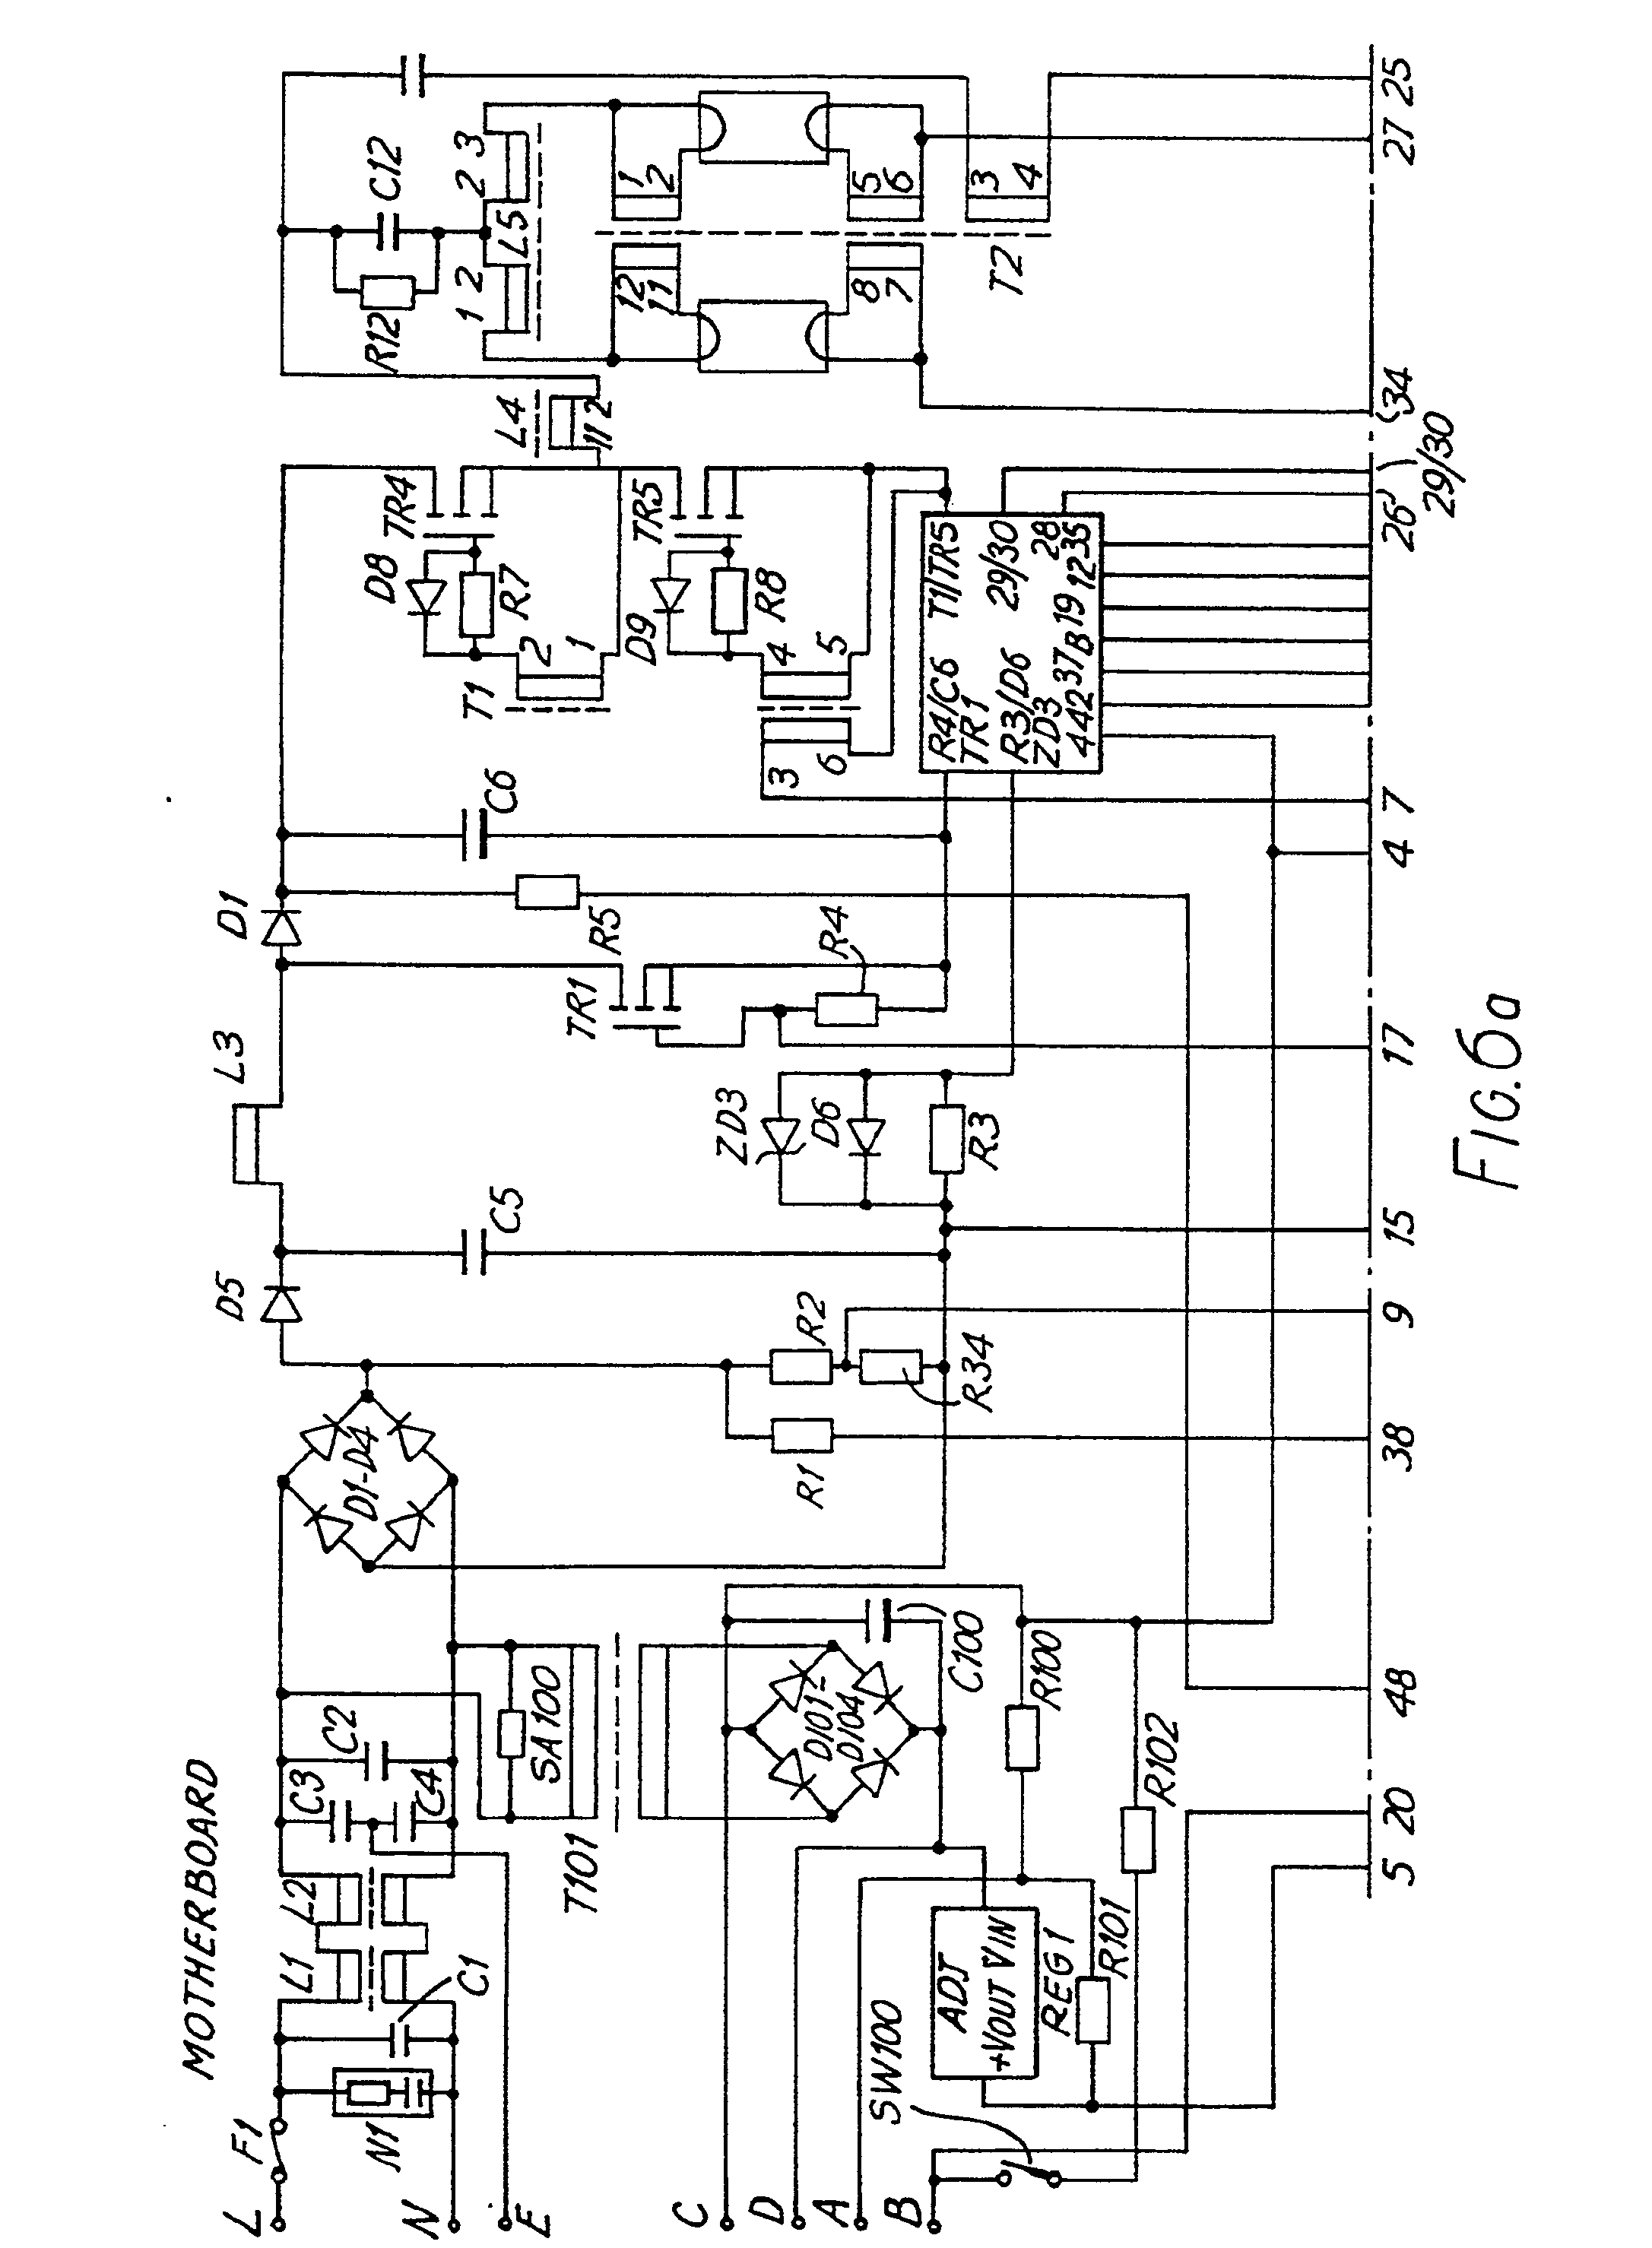 Steinel Pir Wiring Diagram 26 Images Motion Detector Imgf0005 Patent Ep0447136a2 A Method For Automatic Switching And Control At Cita